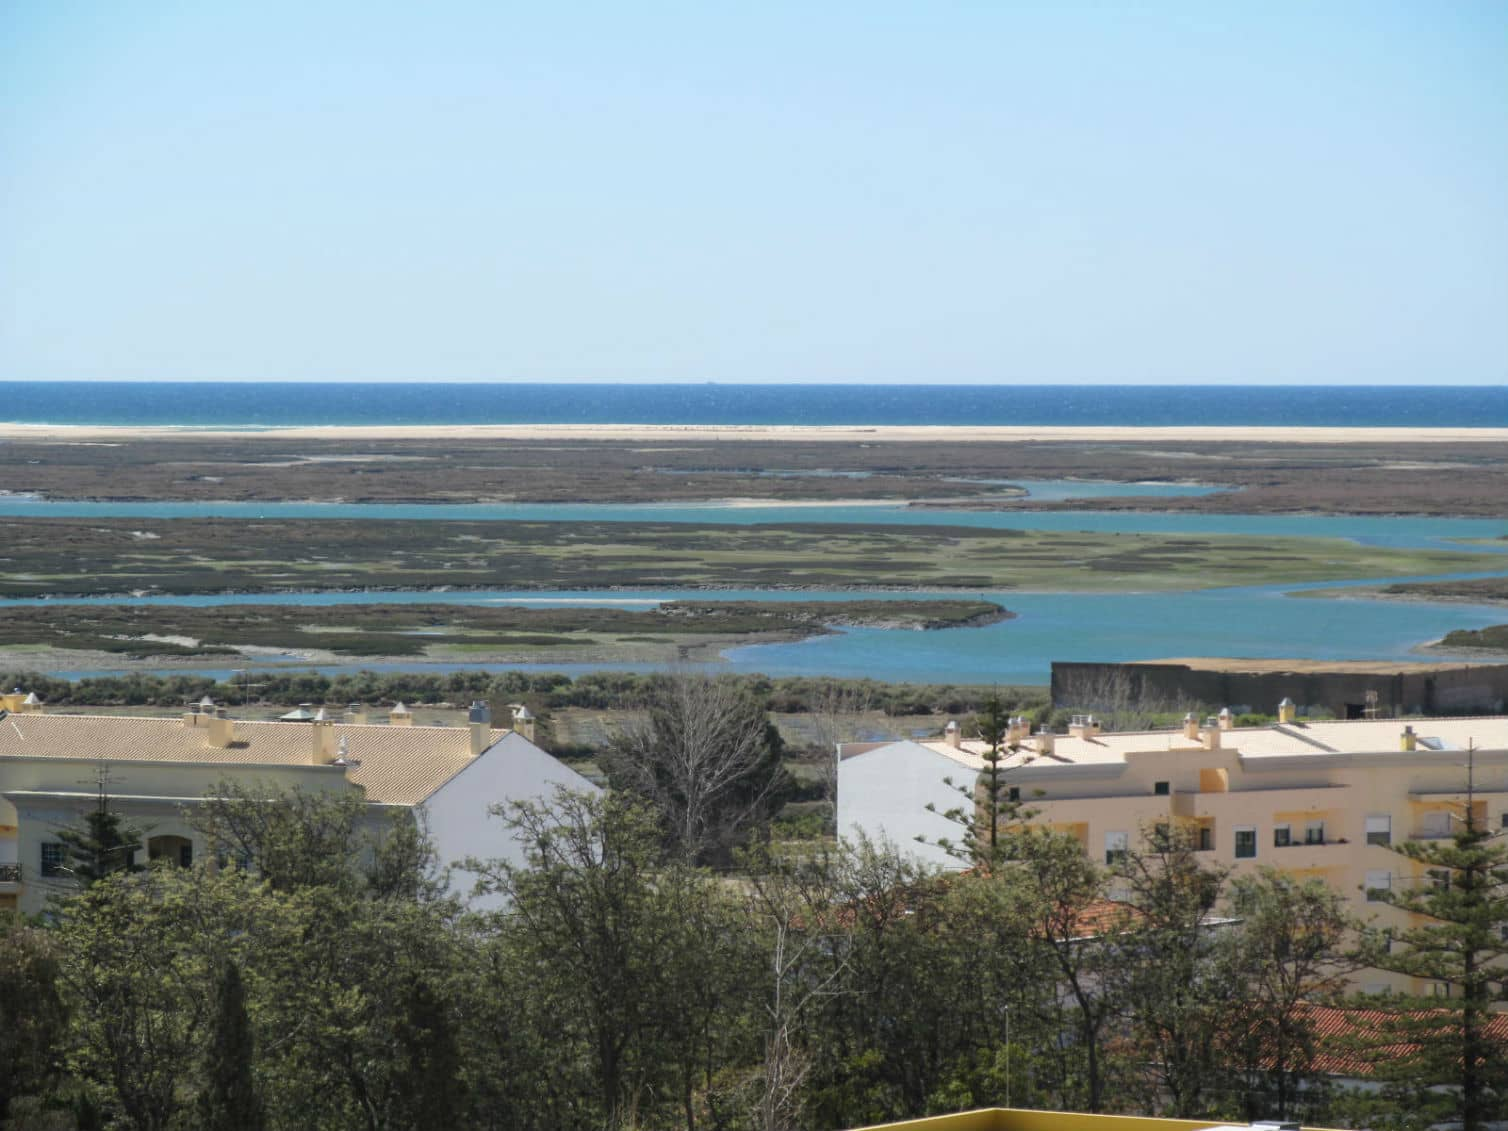 Two apartment buildings facing the salt marshes and ocean at the Ria Formosa Natural Park in Faro